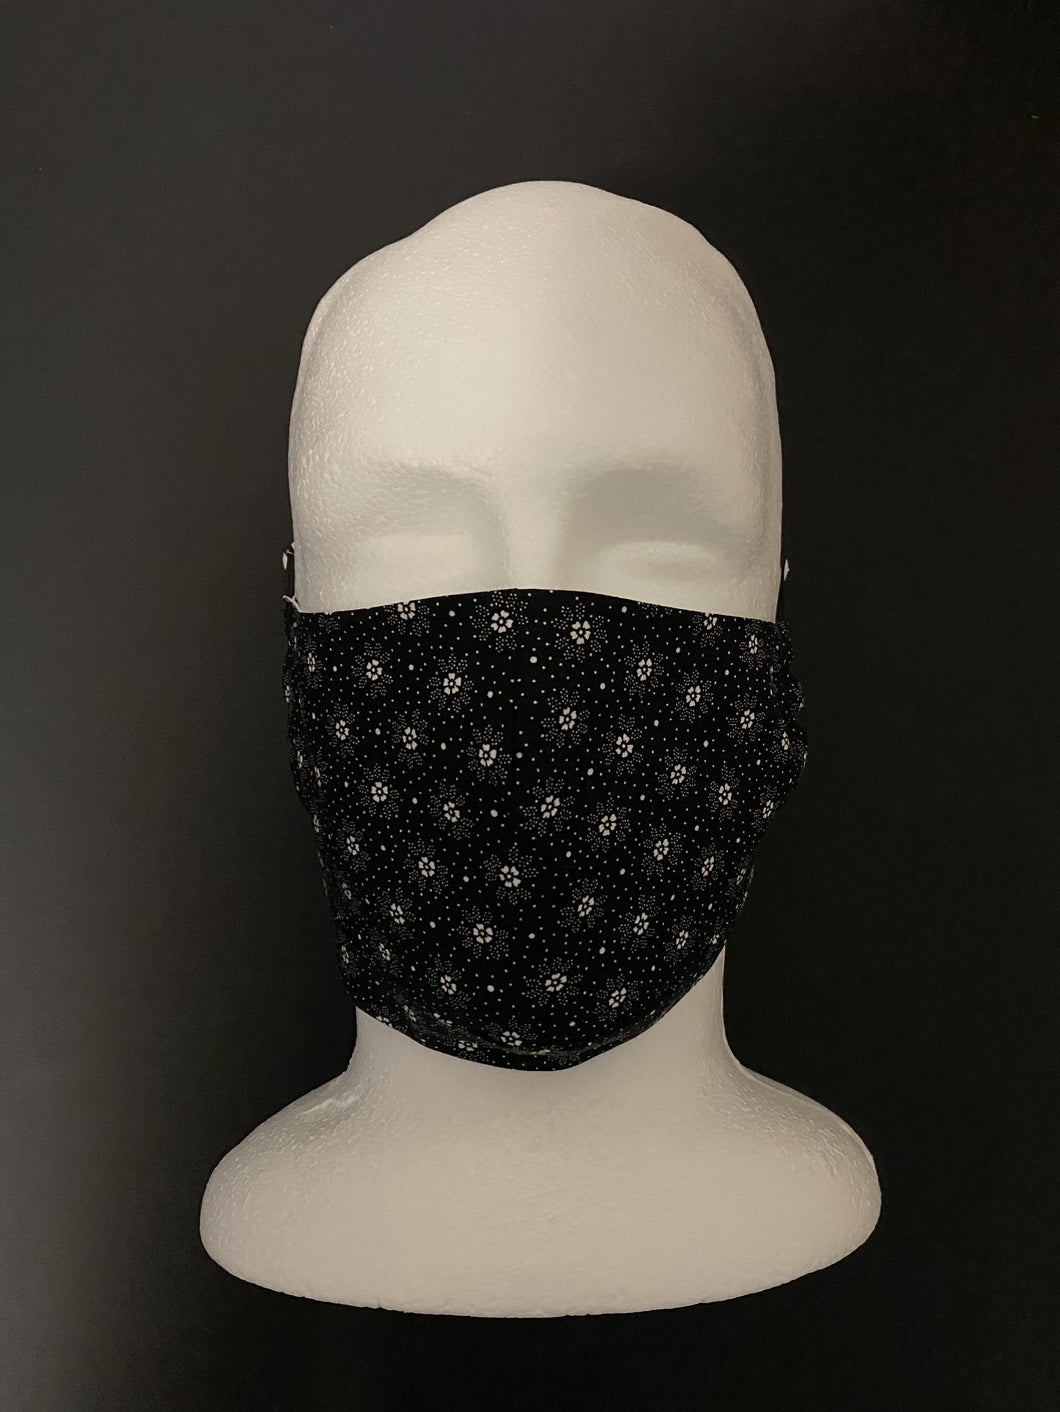 ADULT UNISEX NON-SURGICAL MASK 3 x LAYER White Dot Floral on Black